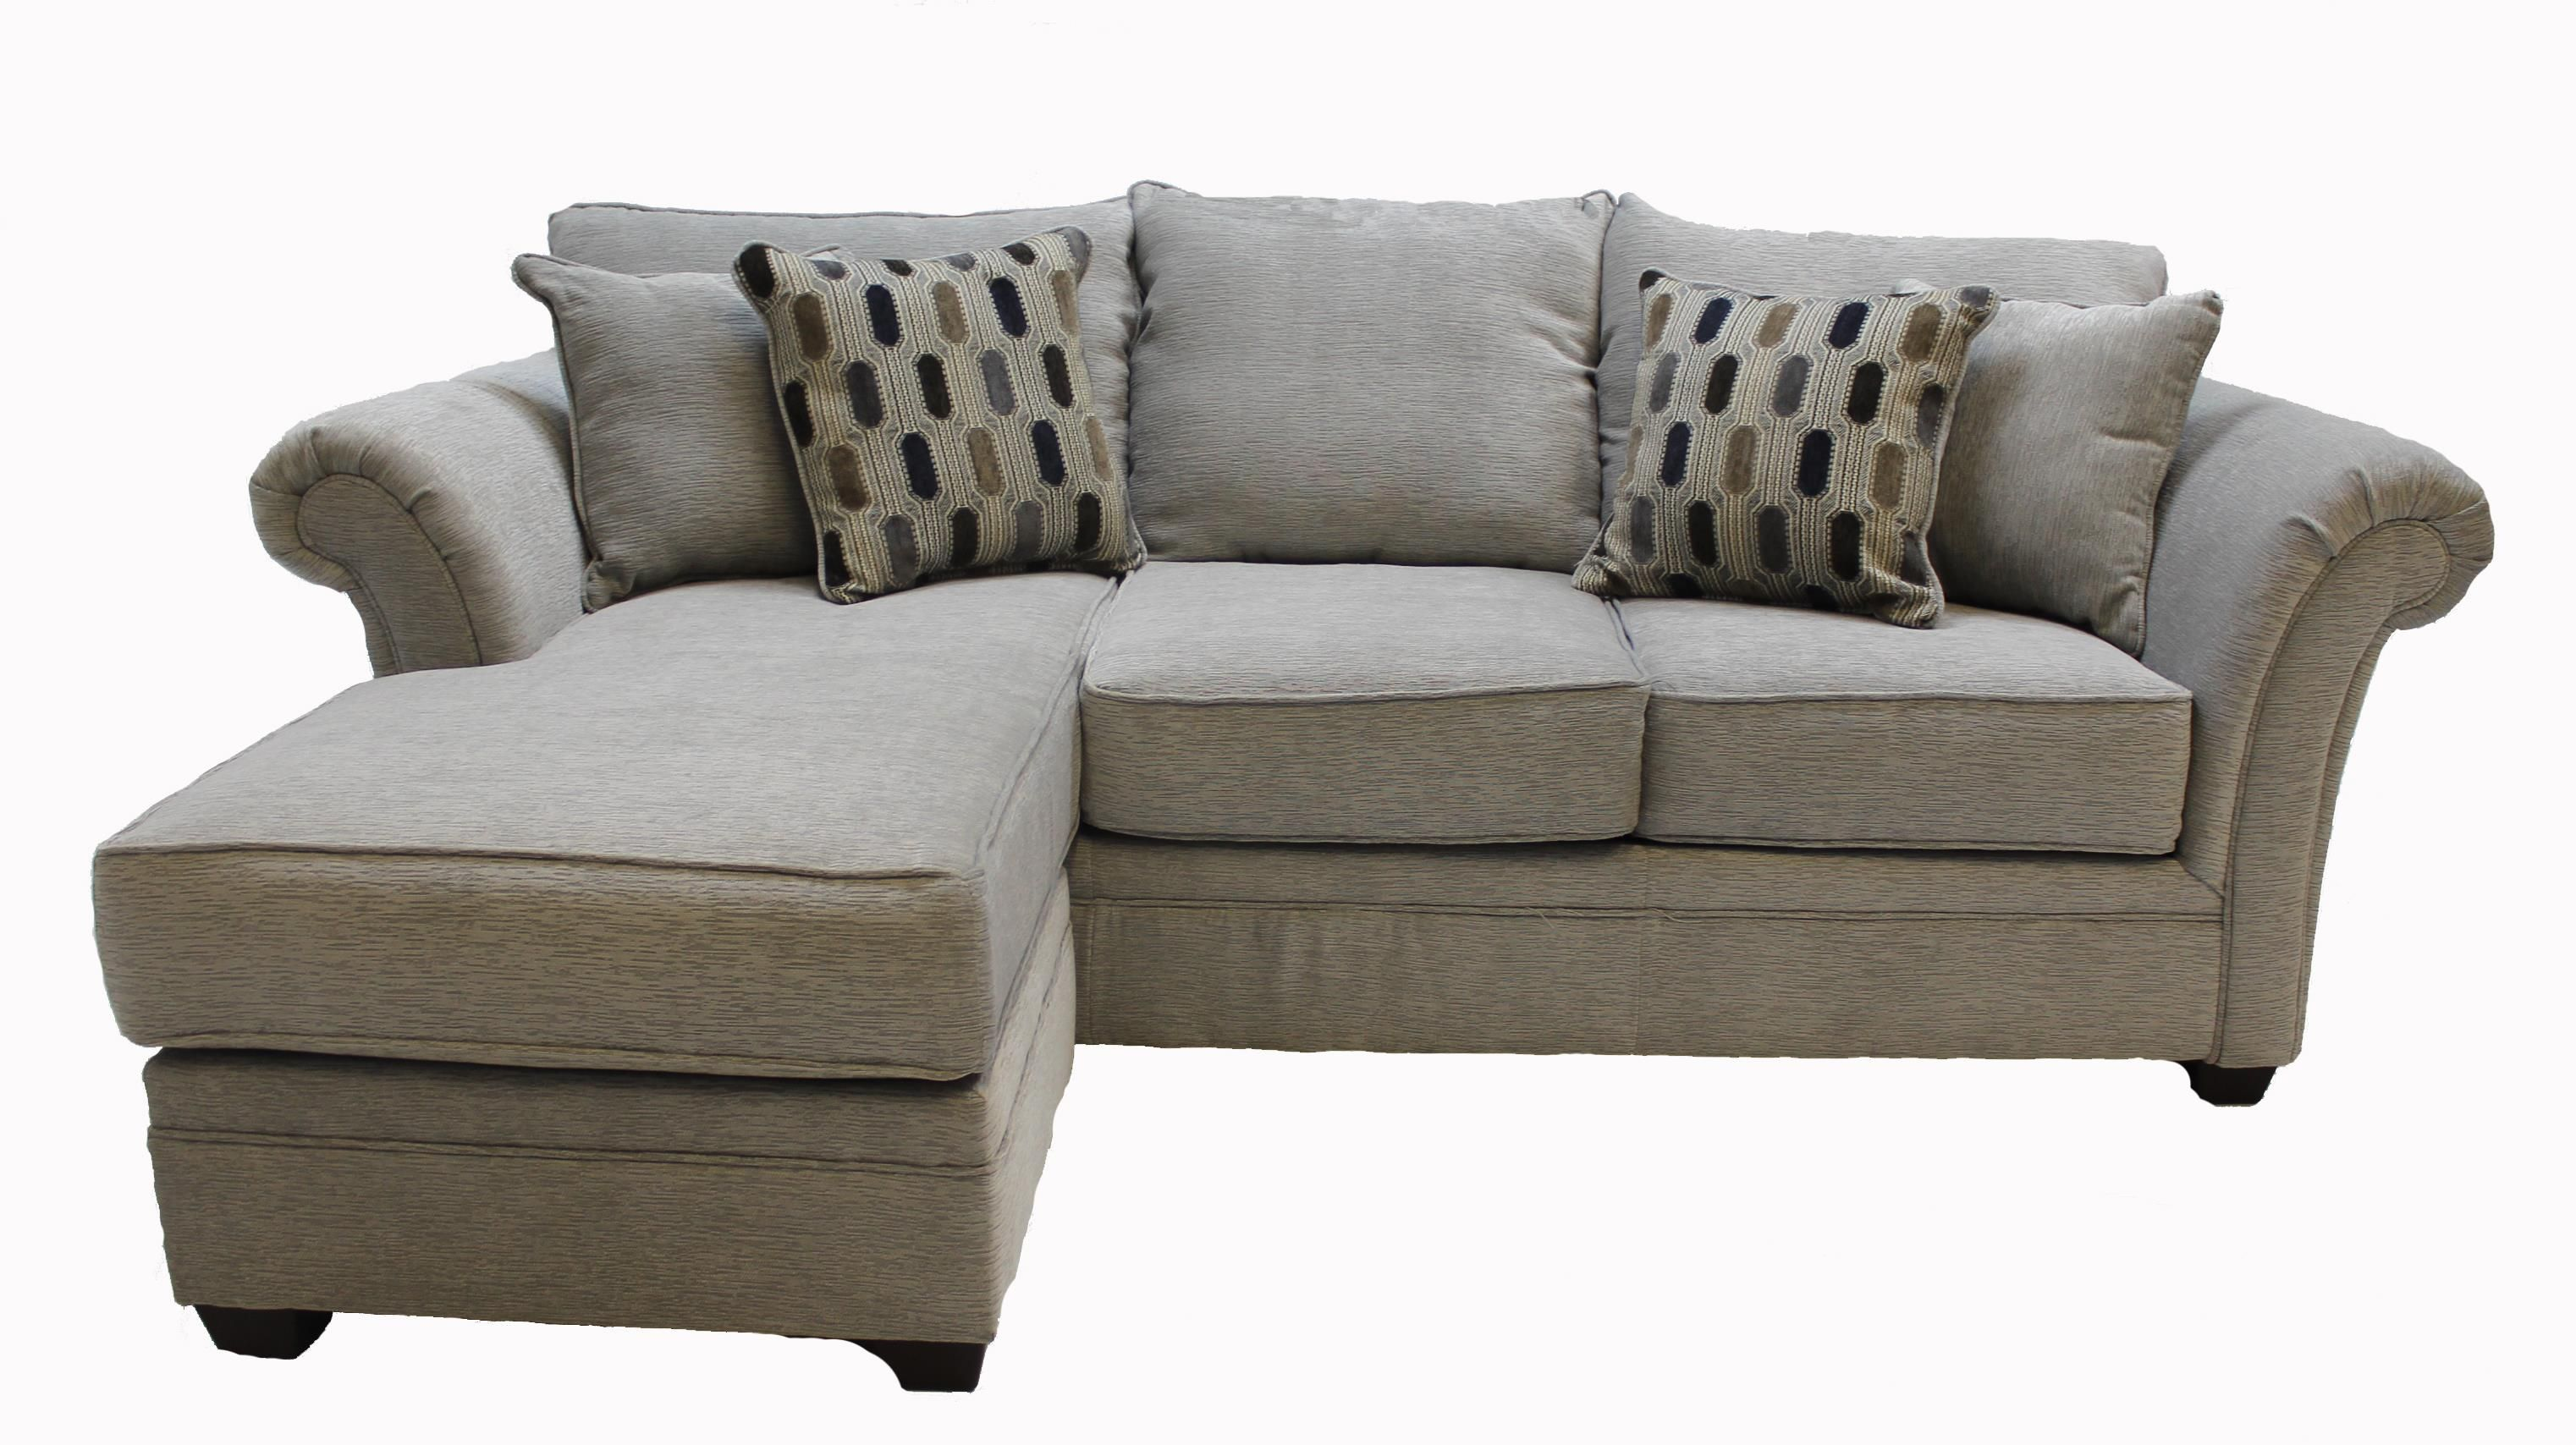 Enjoyable 5125 Sofa By Serta Upholstery By Hughes New House Sofa Pdpeps Interior Chair Design Pdpepsorg